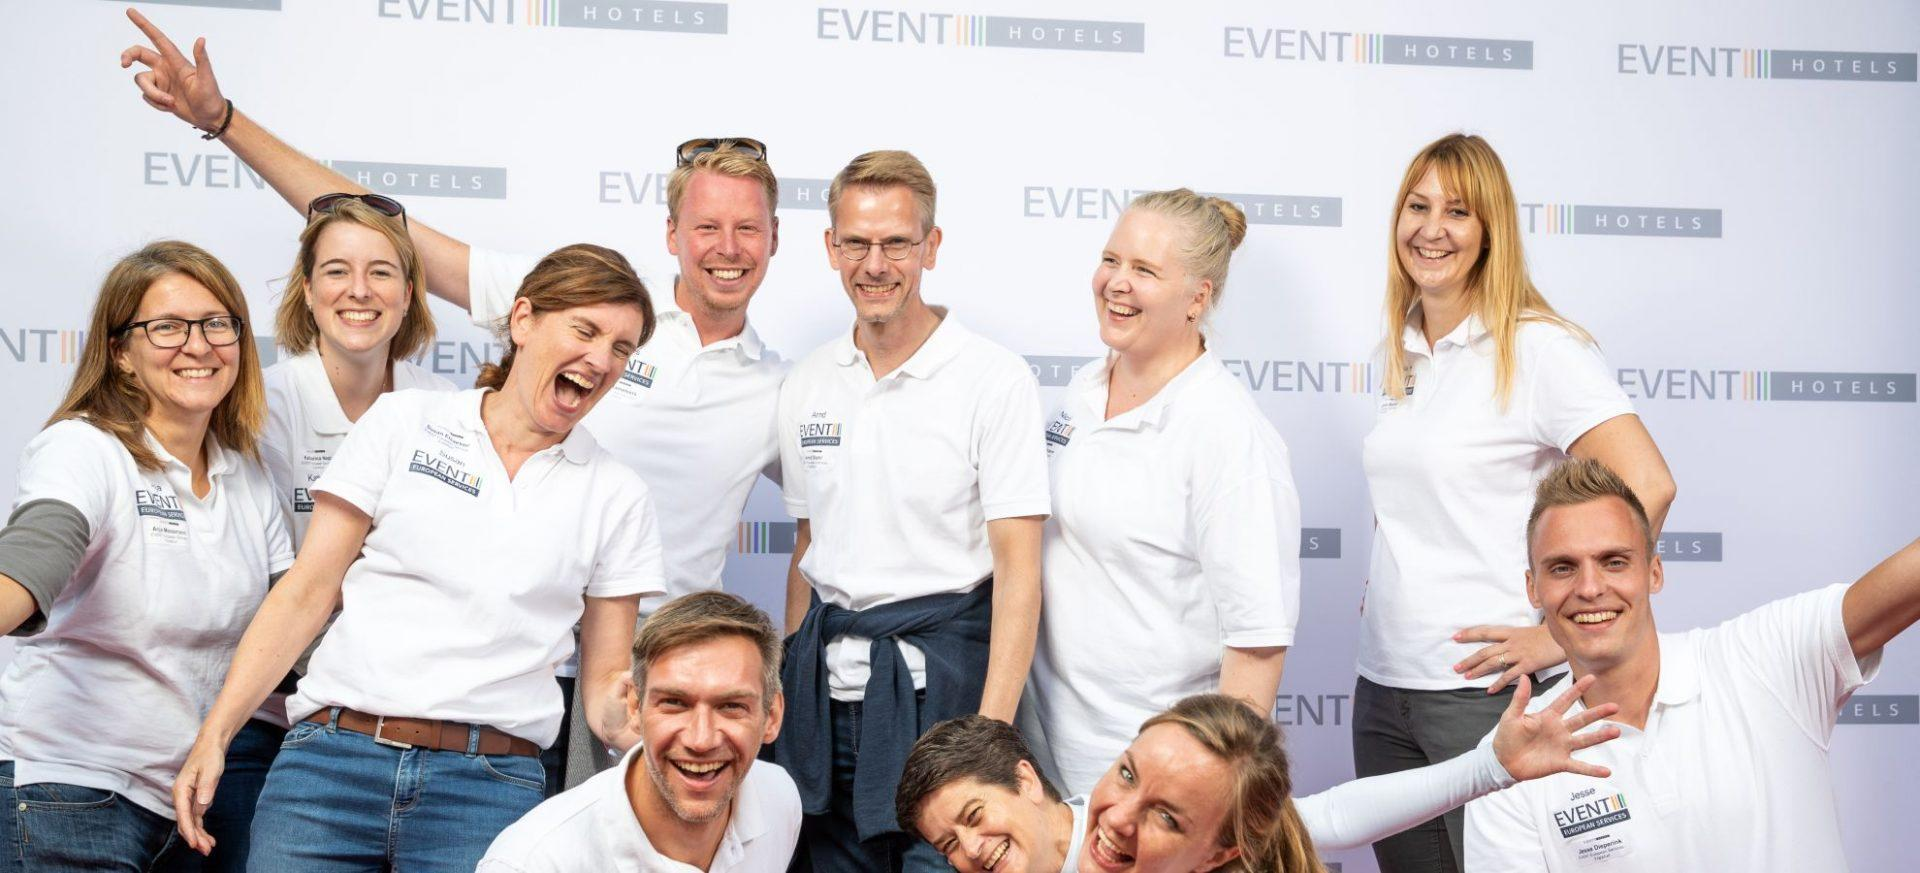 Wir sind EVENT_RevenueTeam_EVENT Hotels